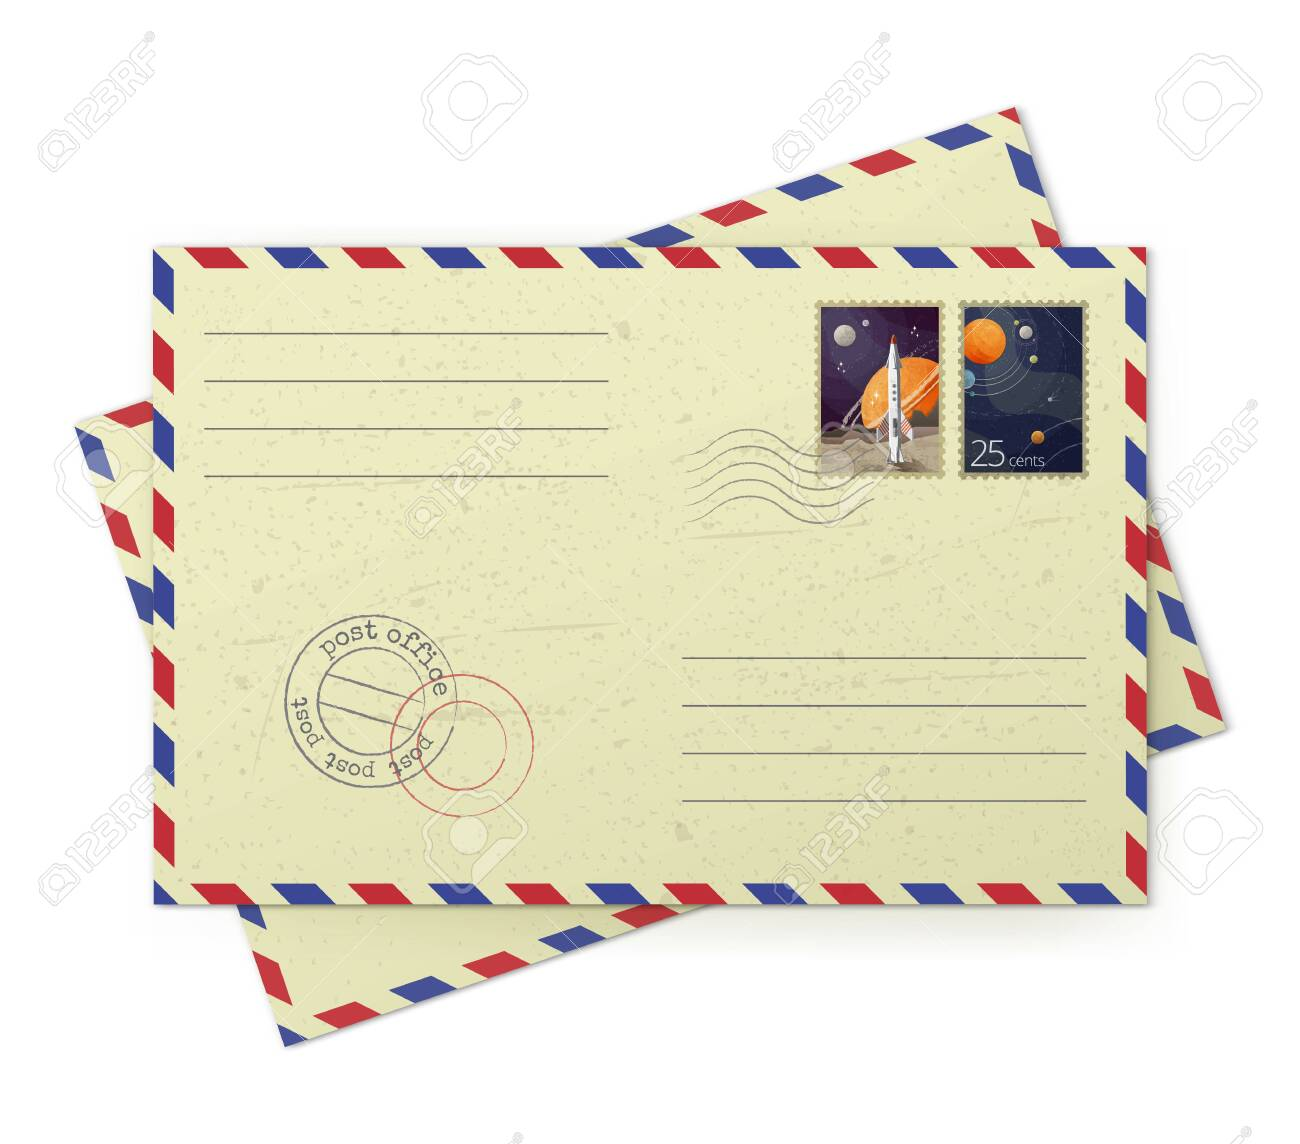 Vector illustrator of vintage airmail envelopes with postal stamps isolated on white background - 121193638